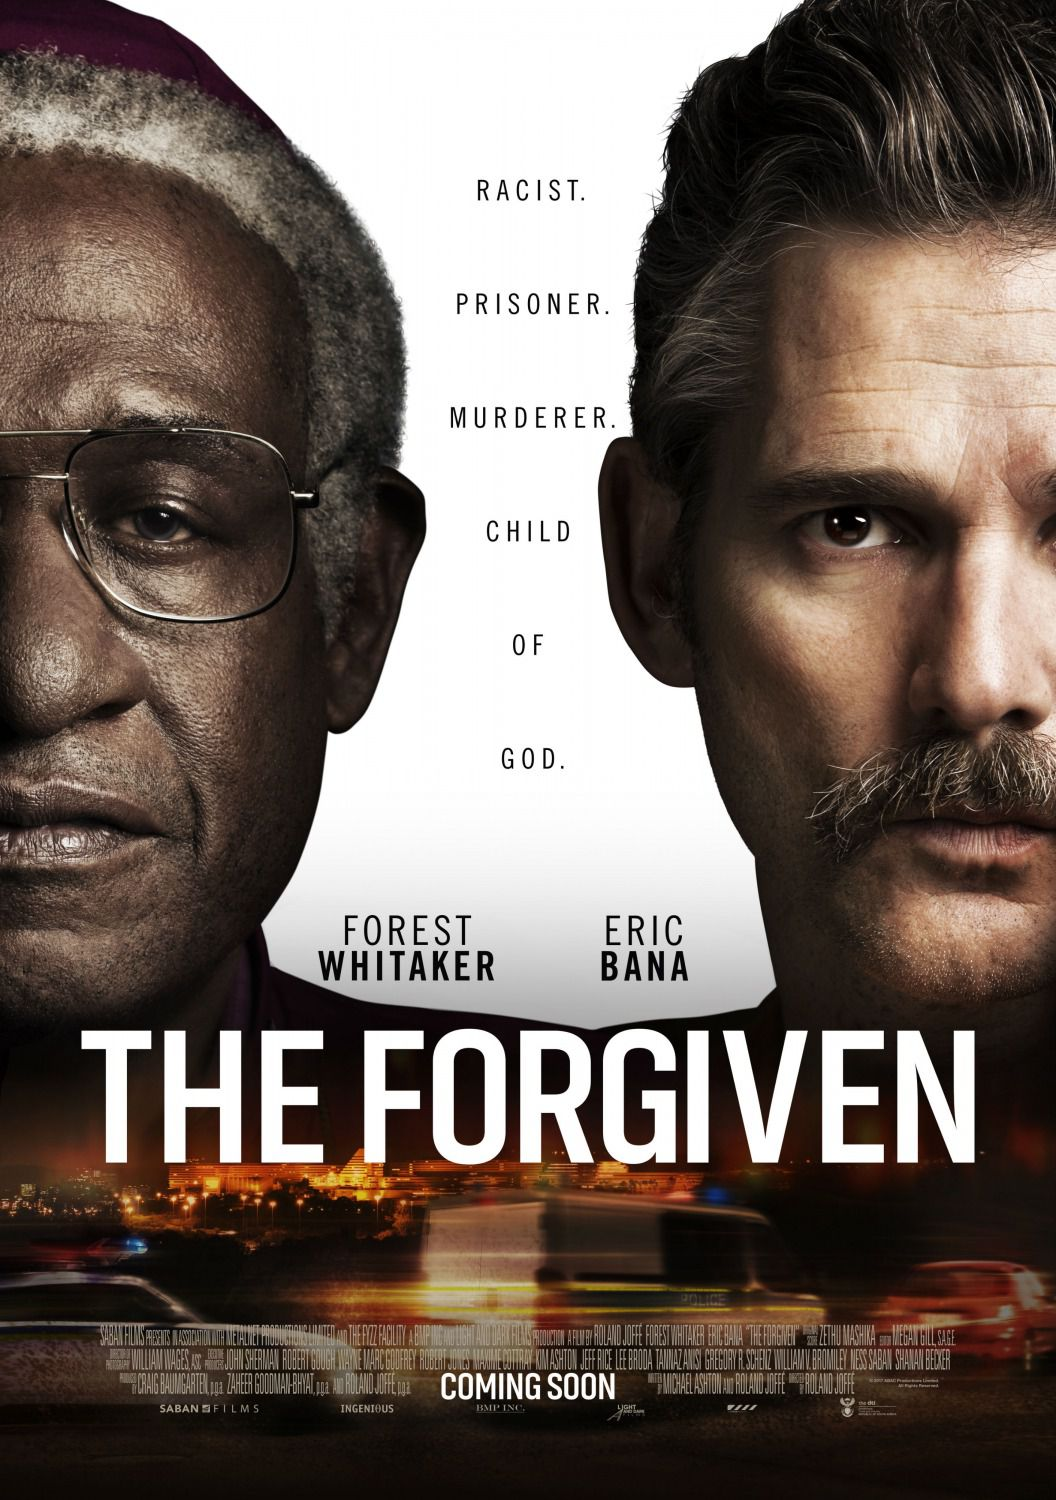 The Forgiven -  Forest Whitaker, Eric Bana